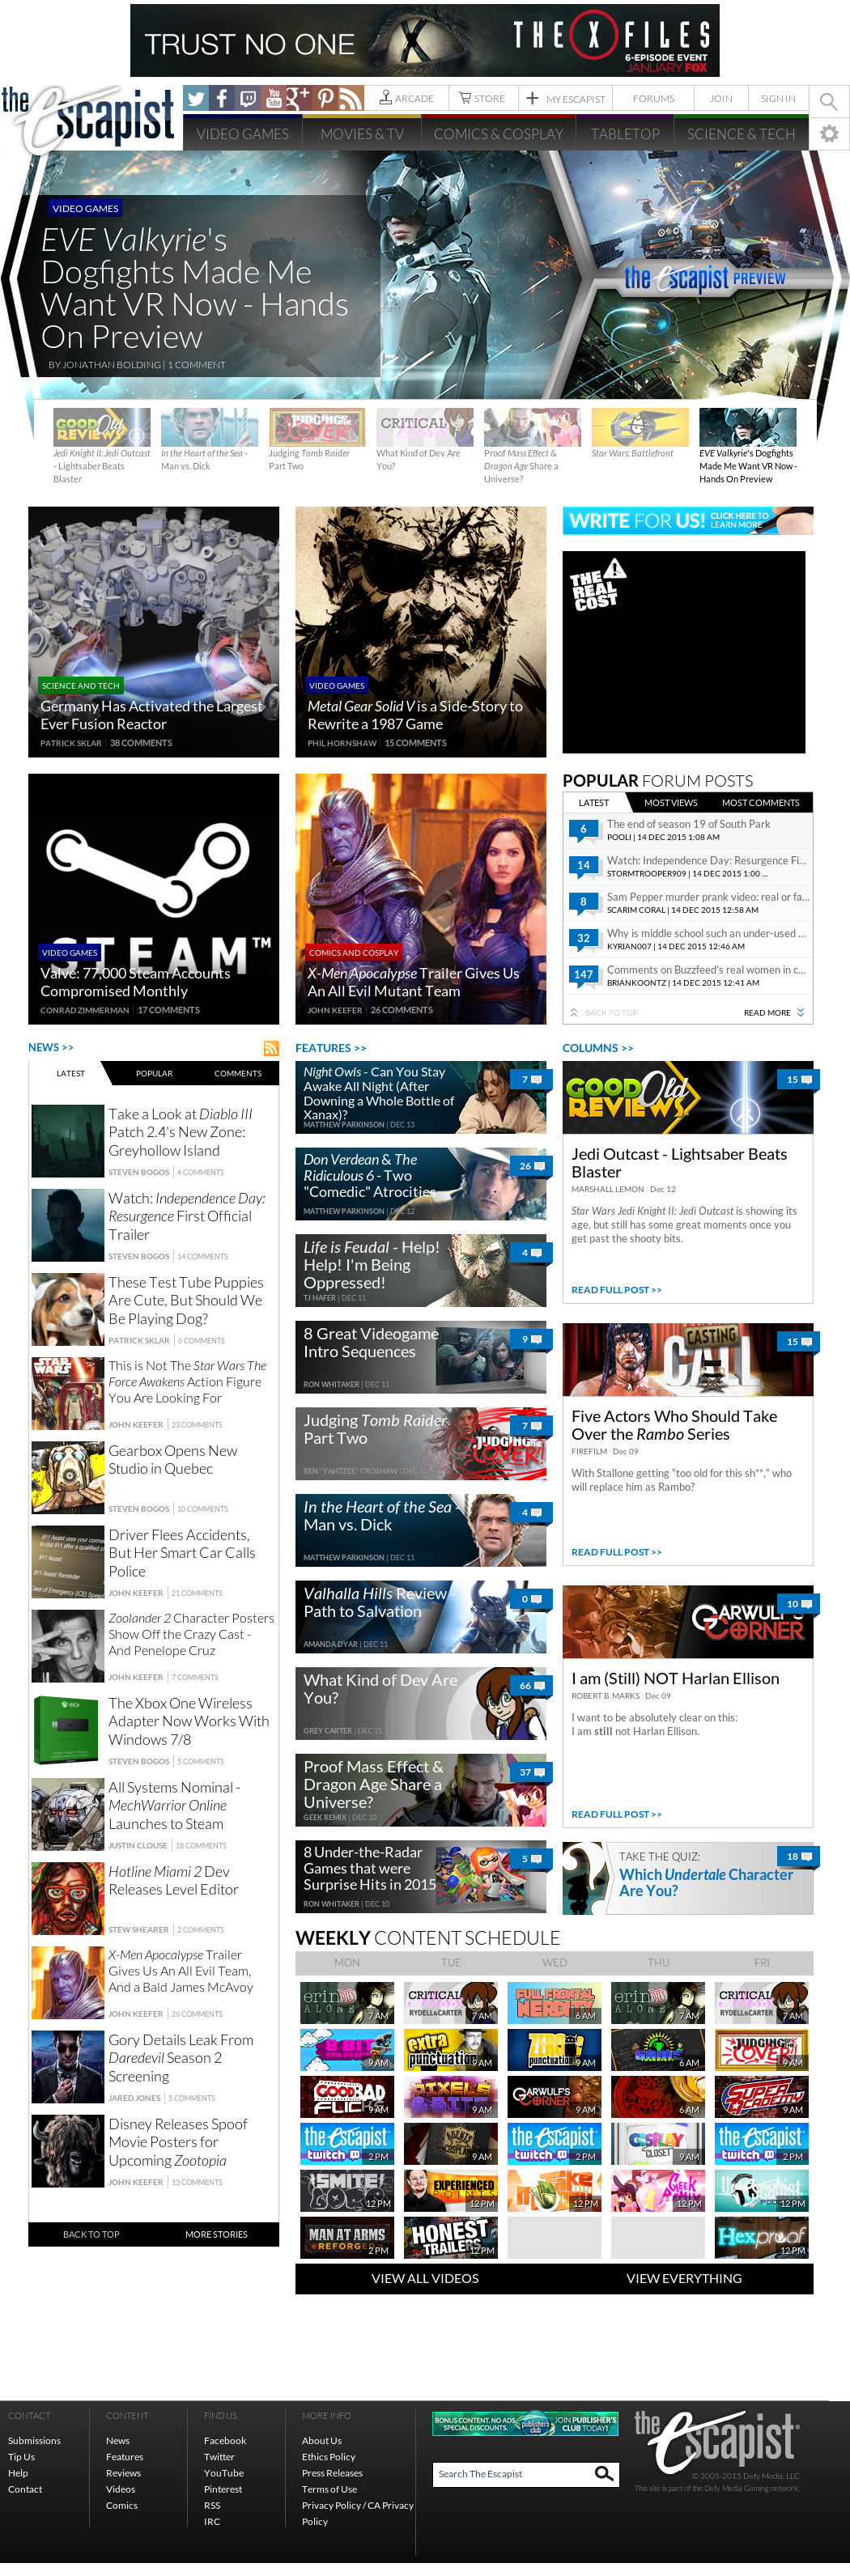 The Escapist S Latest News Blogs Press Releases Videos